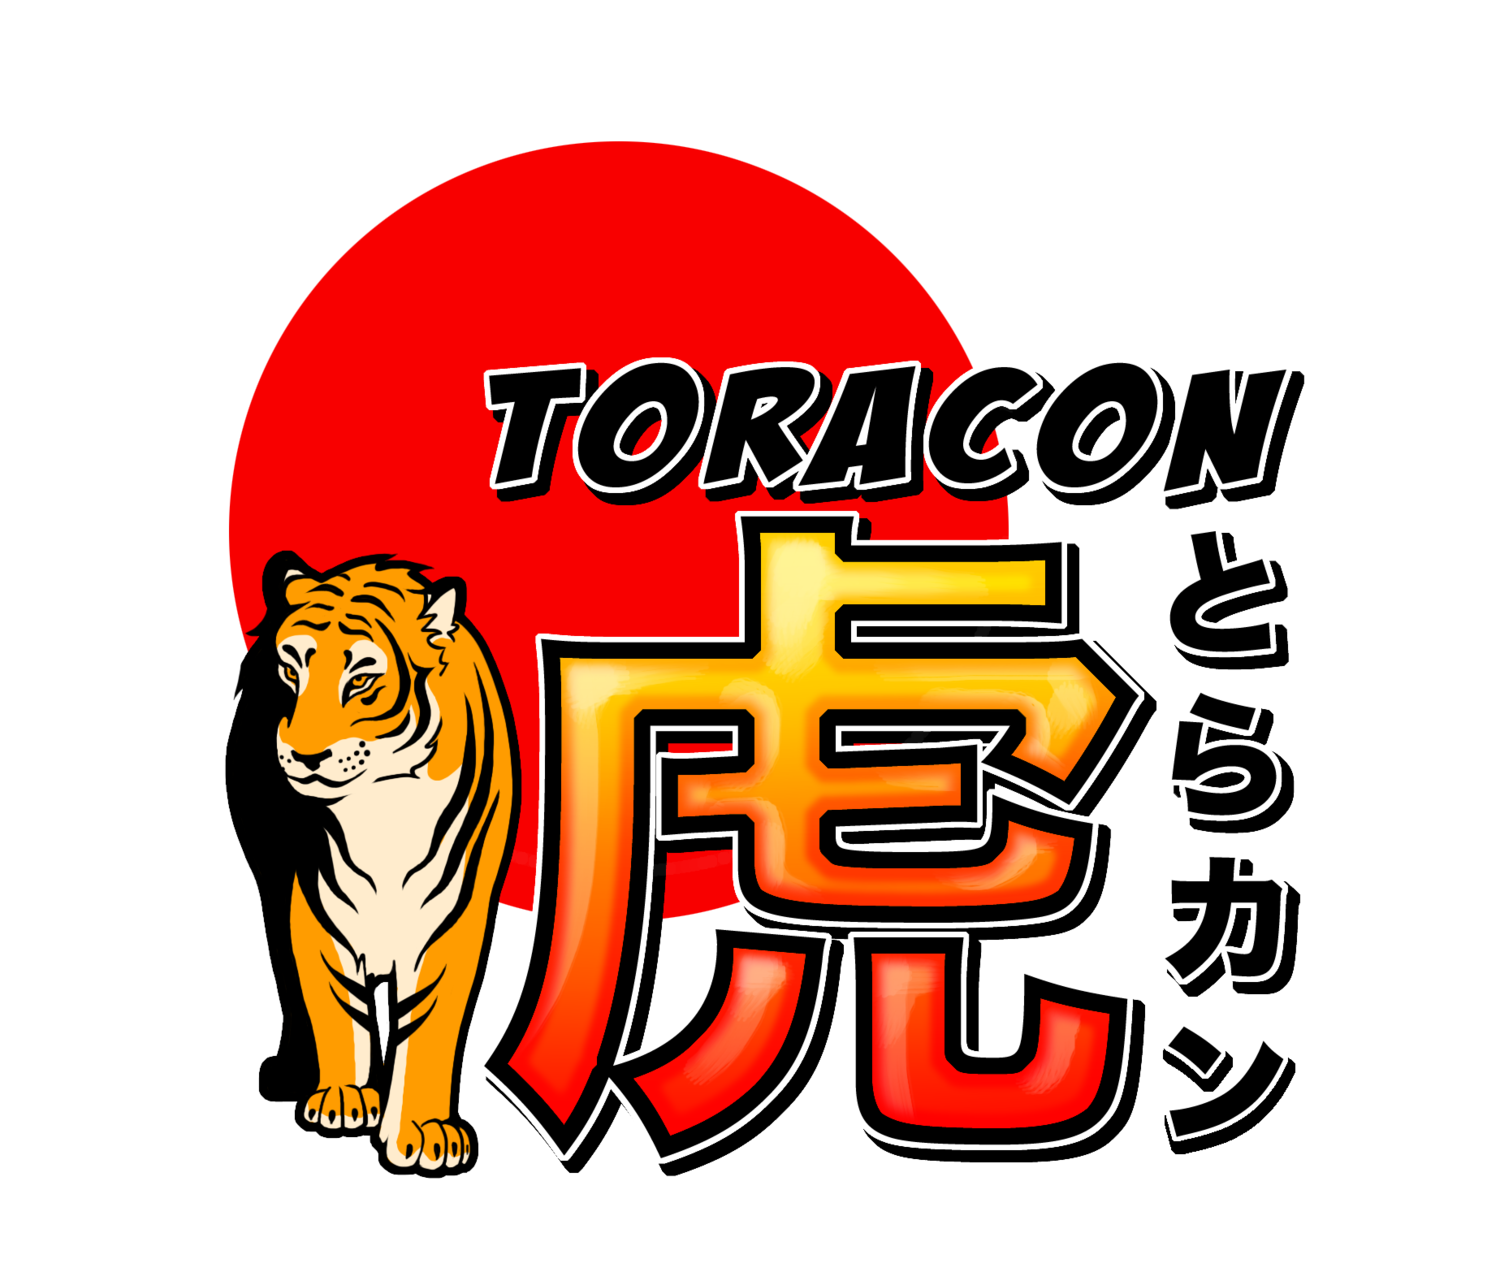 SSA+S Toracon: Anime, Gaming, Comic & Sci-Fi Convention